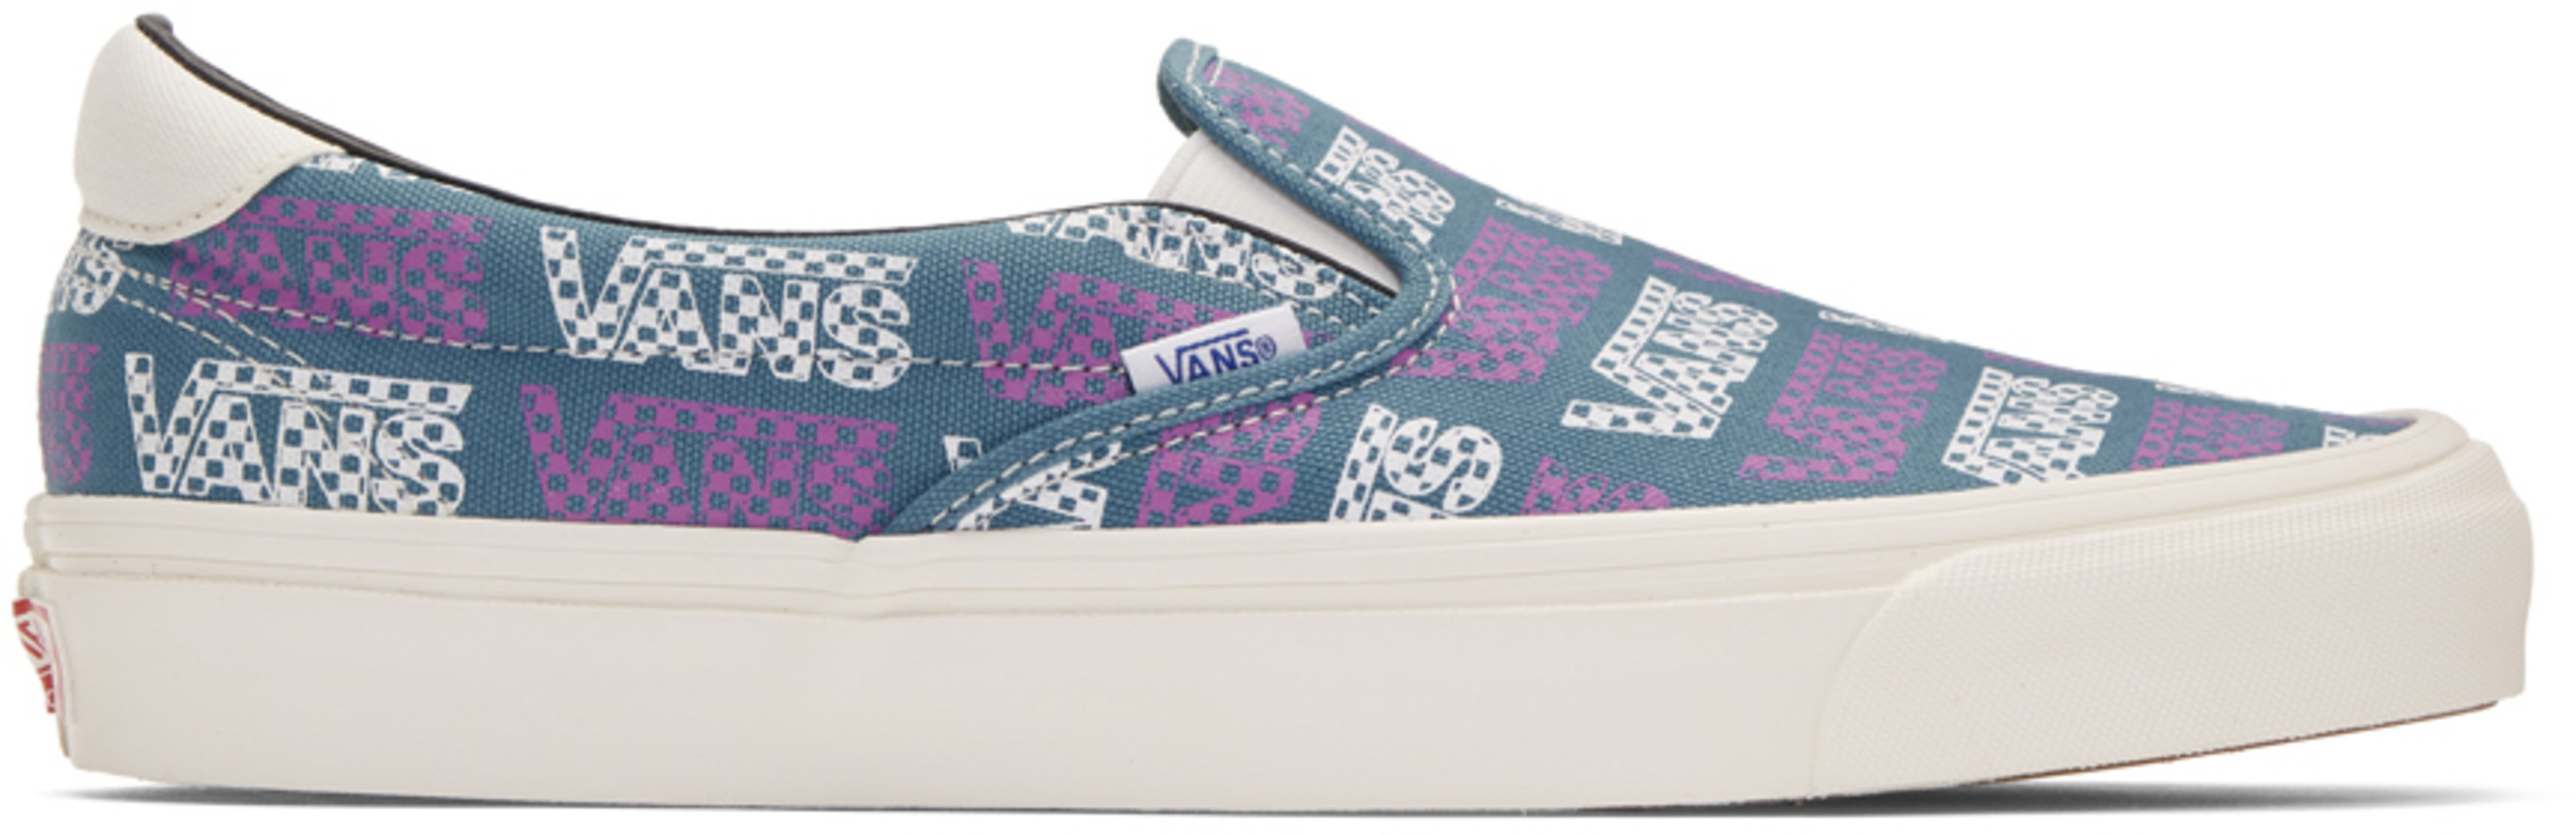 sports shoes 38433 b595a Blue & Purple Logo Checkerboard OG Slip-On 59 LX Sneakers